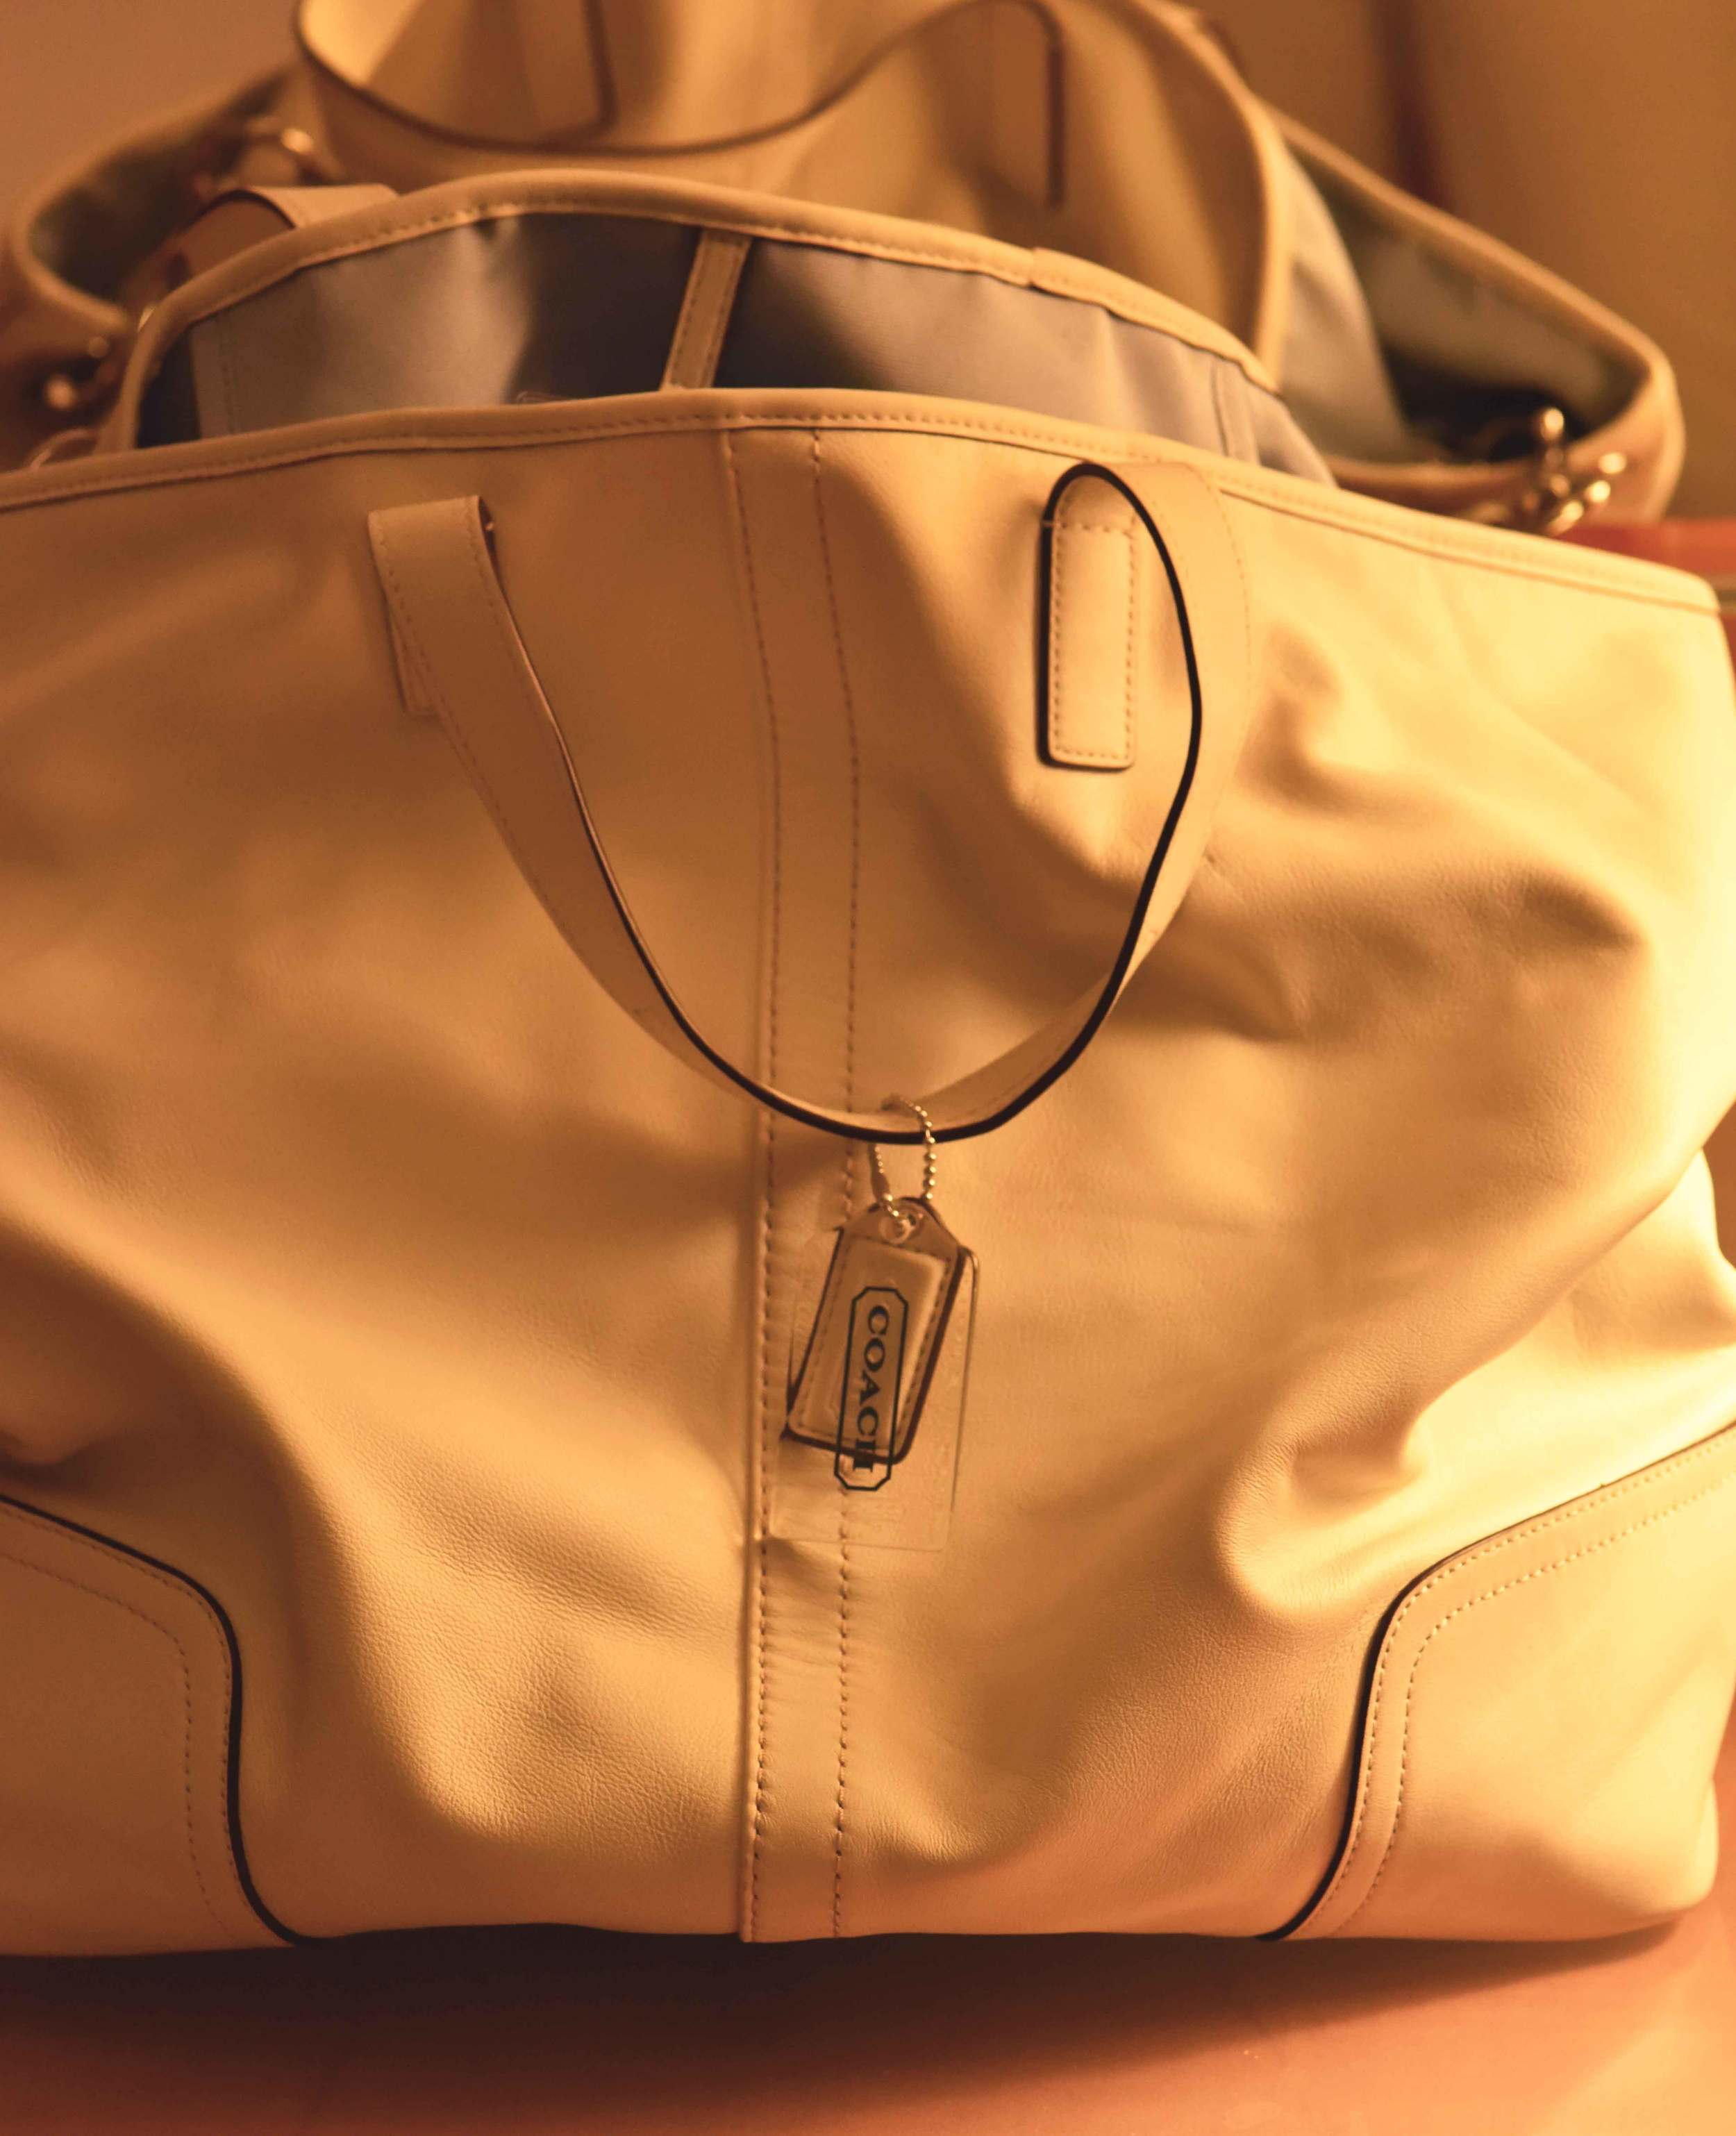 This Coach bag is awesome! Image©gunjanvirk